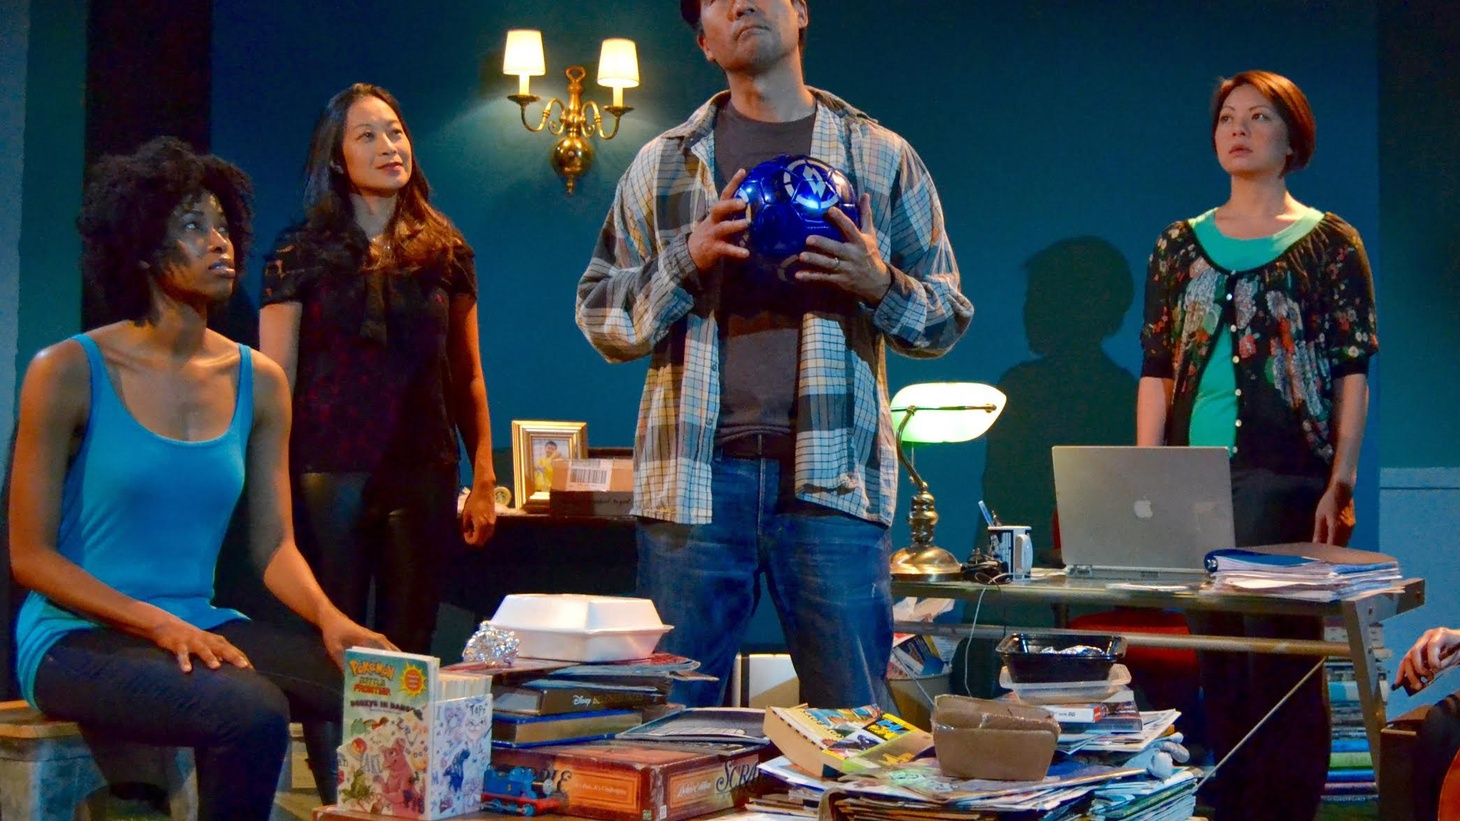 A tragic event, a broken father and the hope of technology to contact the afterlife. Clever writing and a diverse cast help The Speed of Jake along on stage.